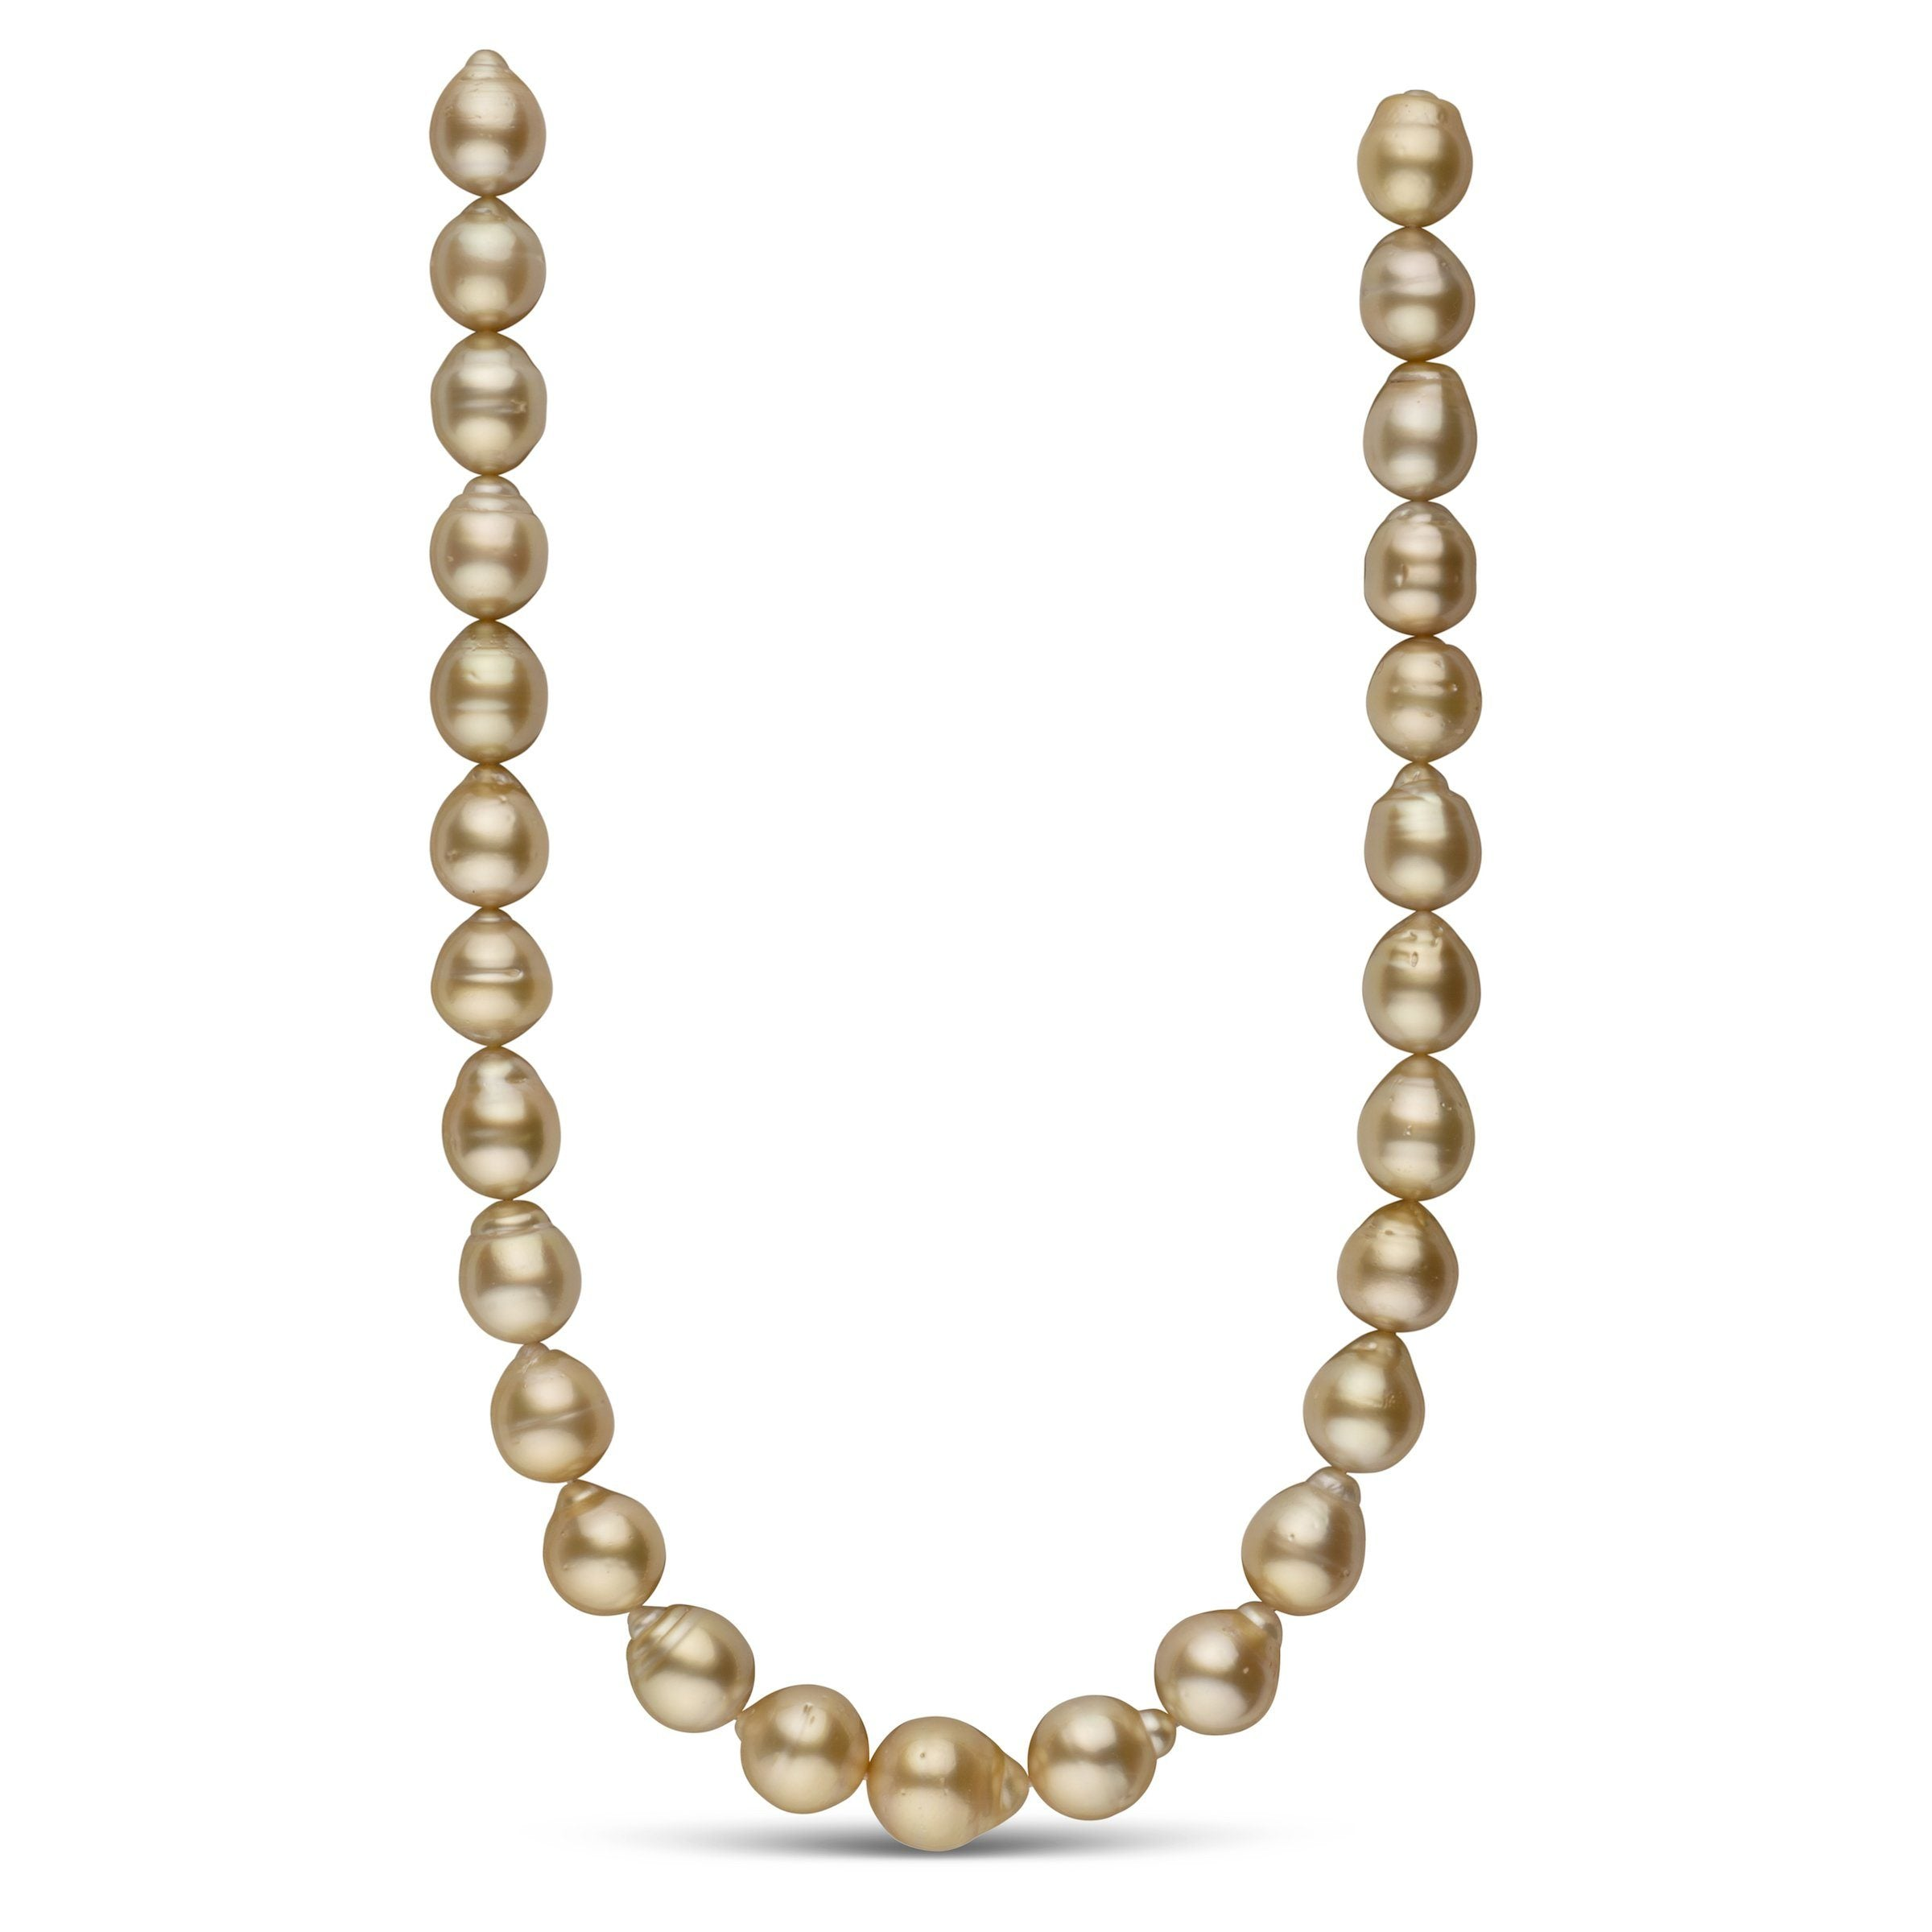 12.3-14.4 mm AA+ Golden South Sea Baroque Necklace